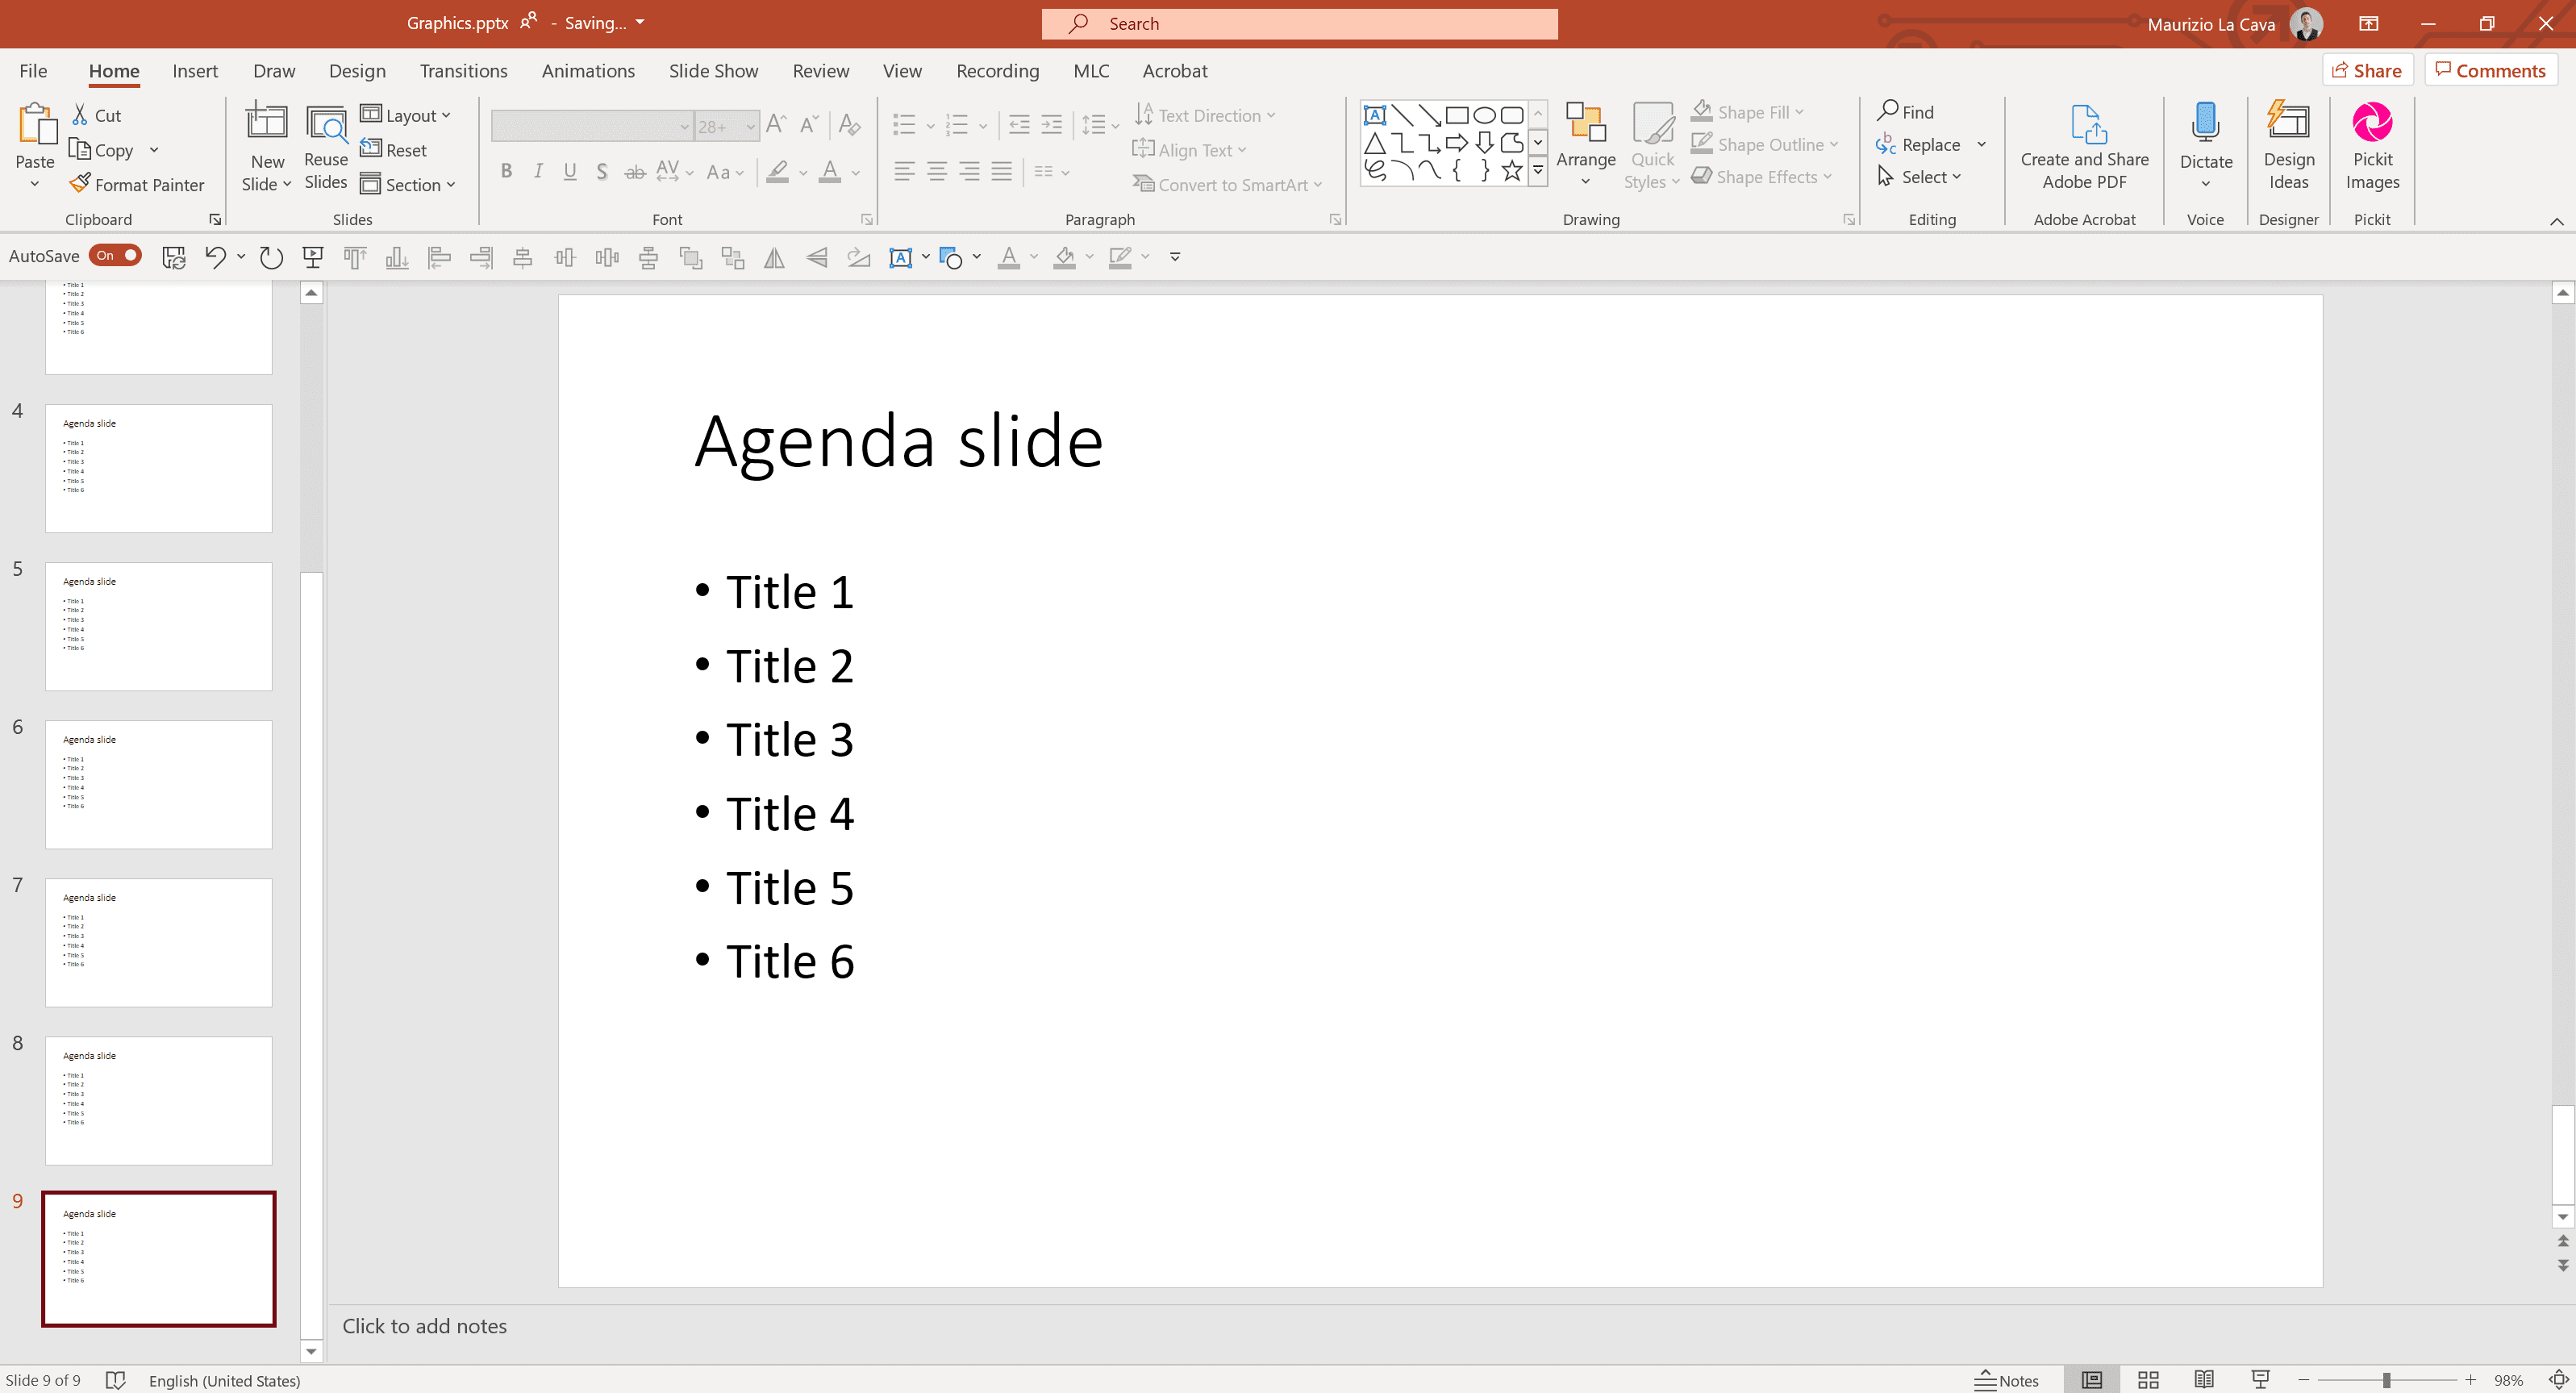 Table of Contents in PowerPoint | Maurizio la Cava